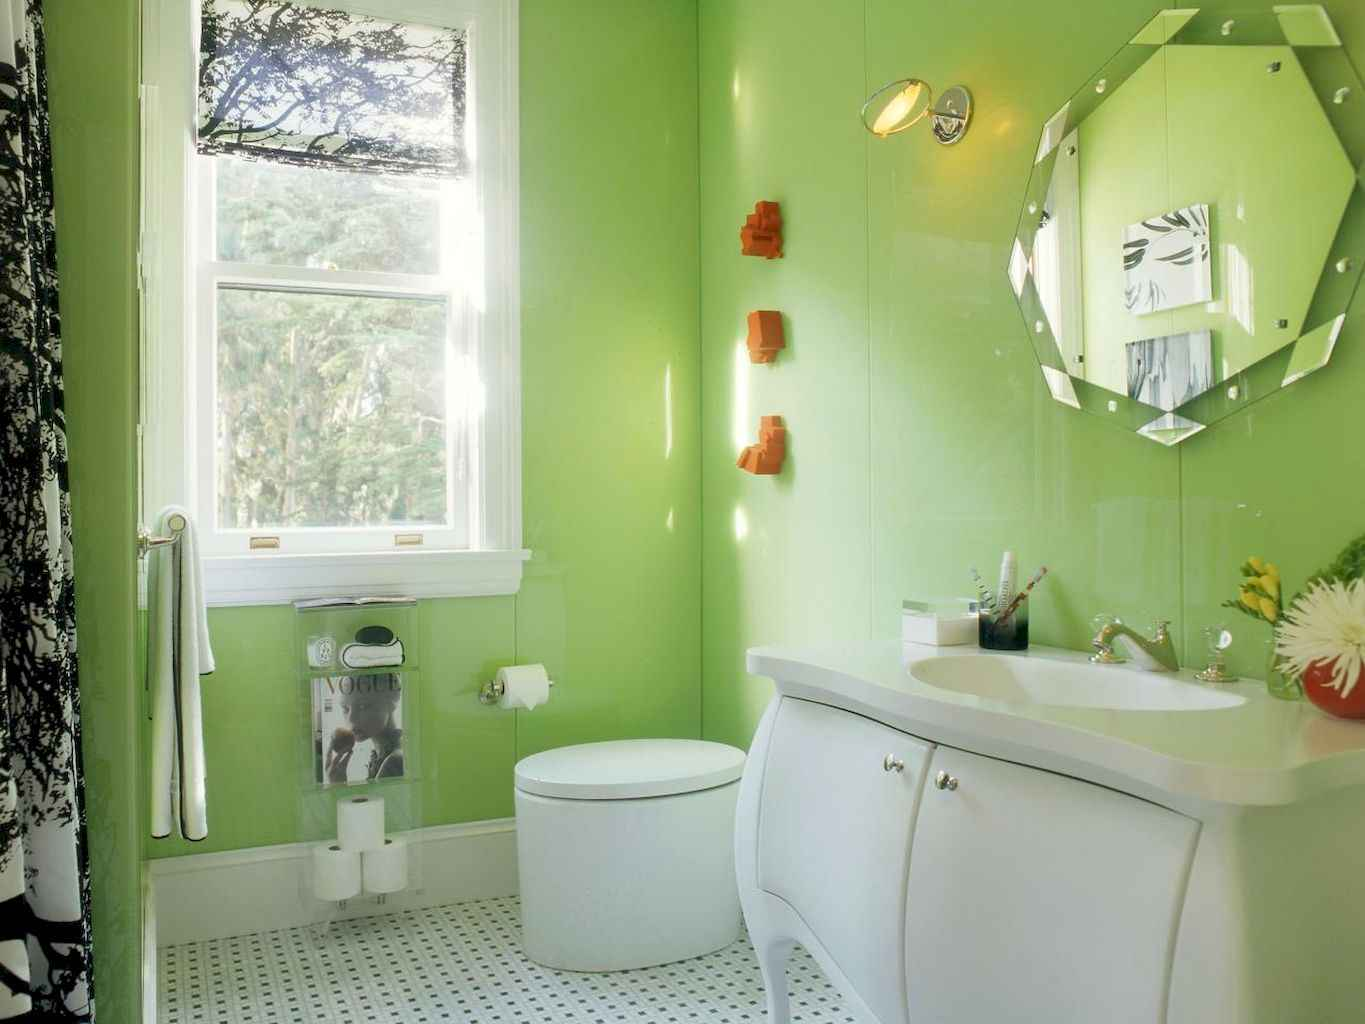 55 cool and relax bathroom design ideas (22)